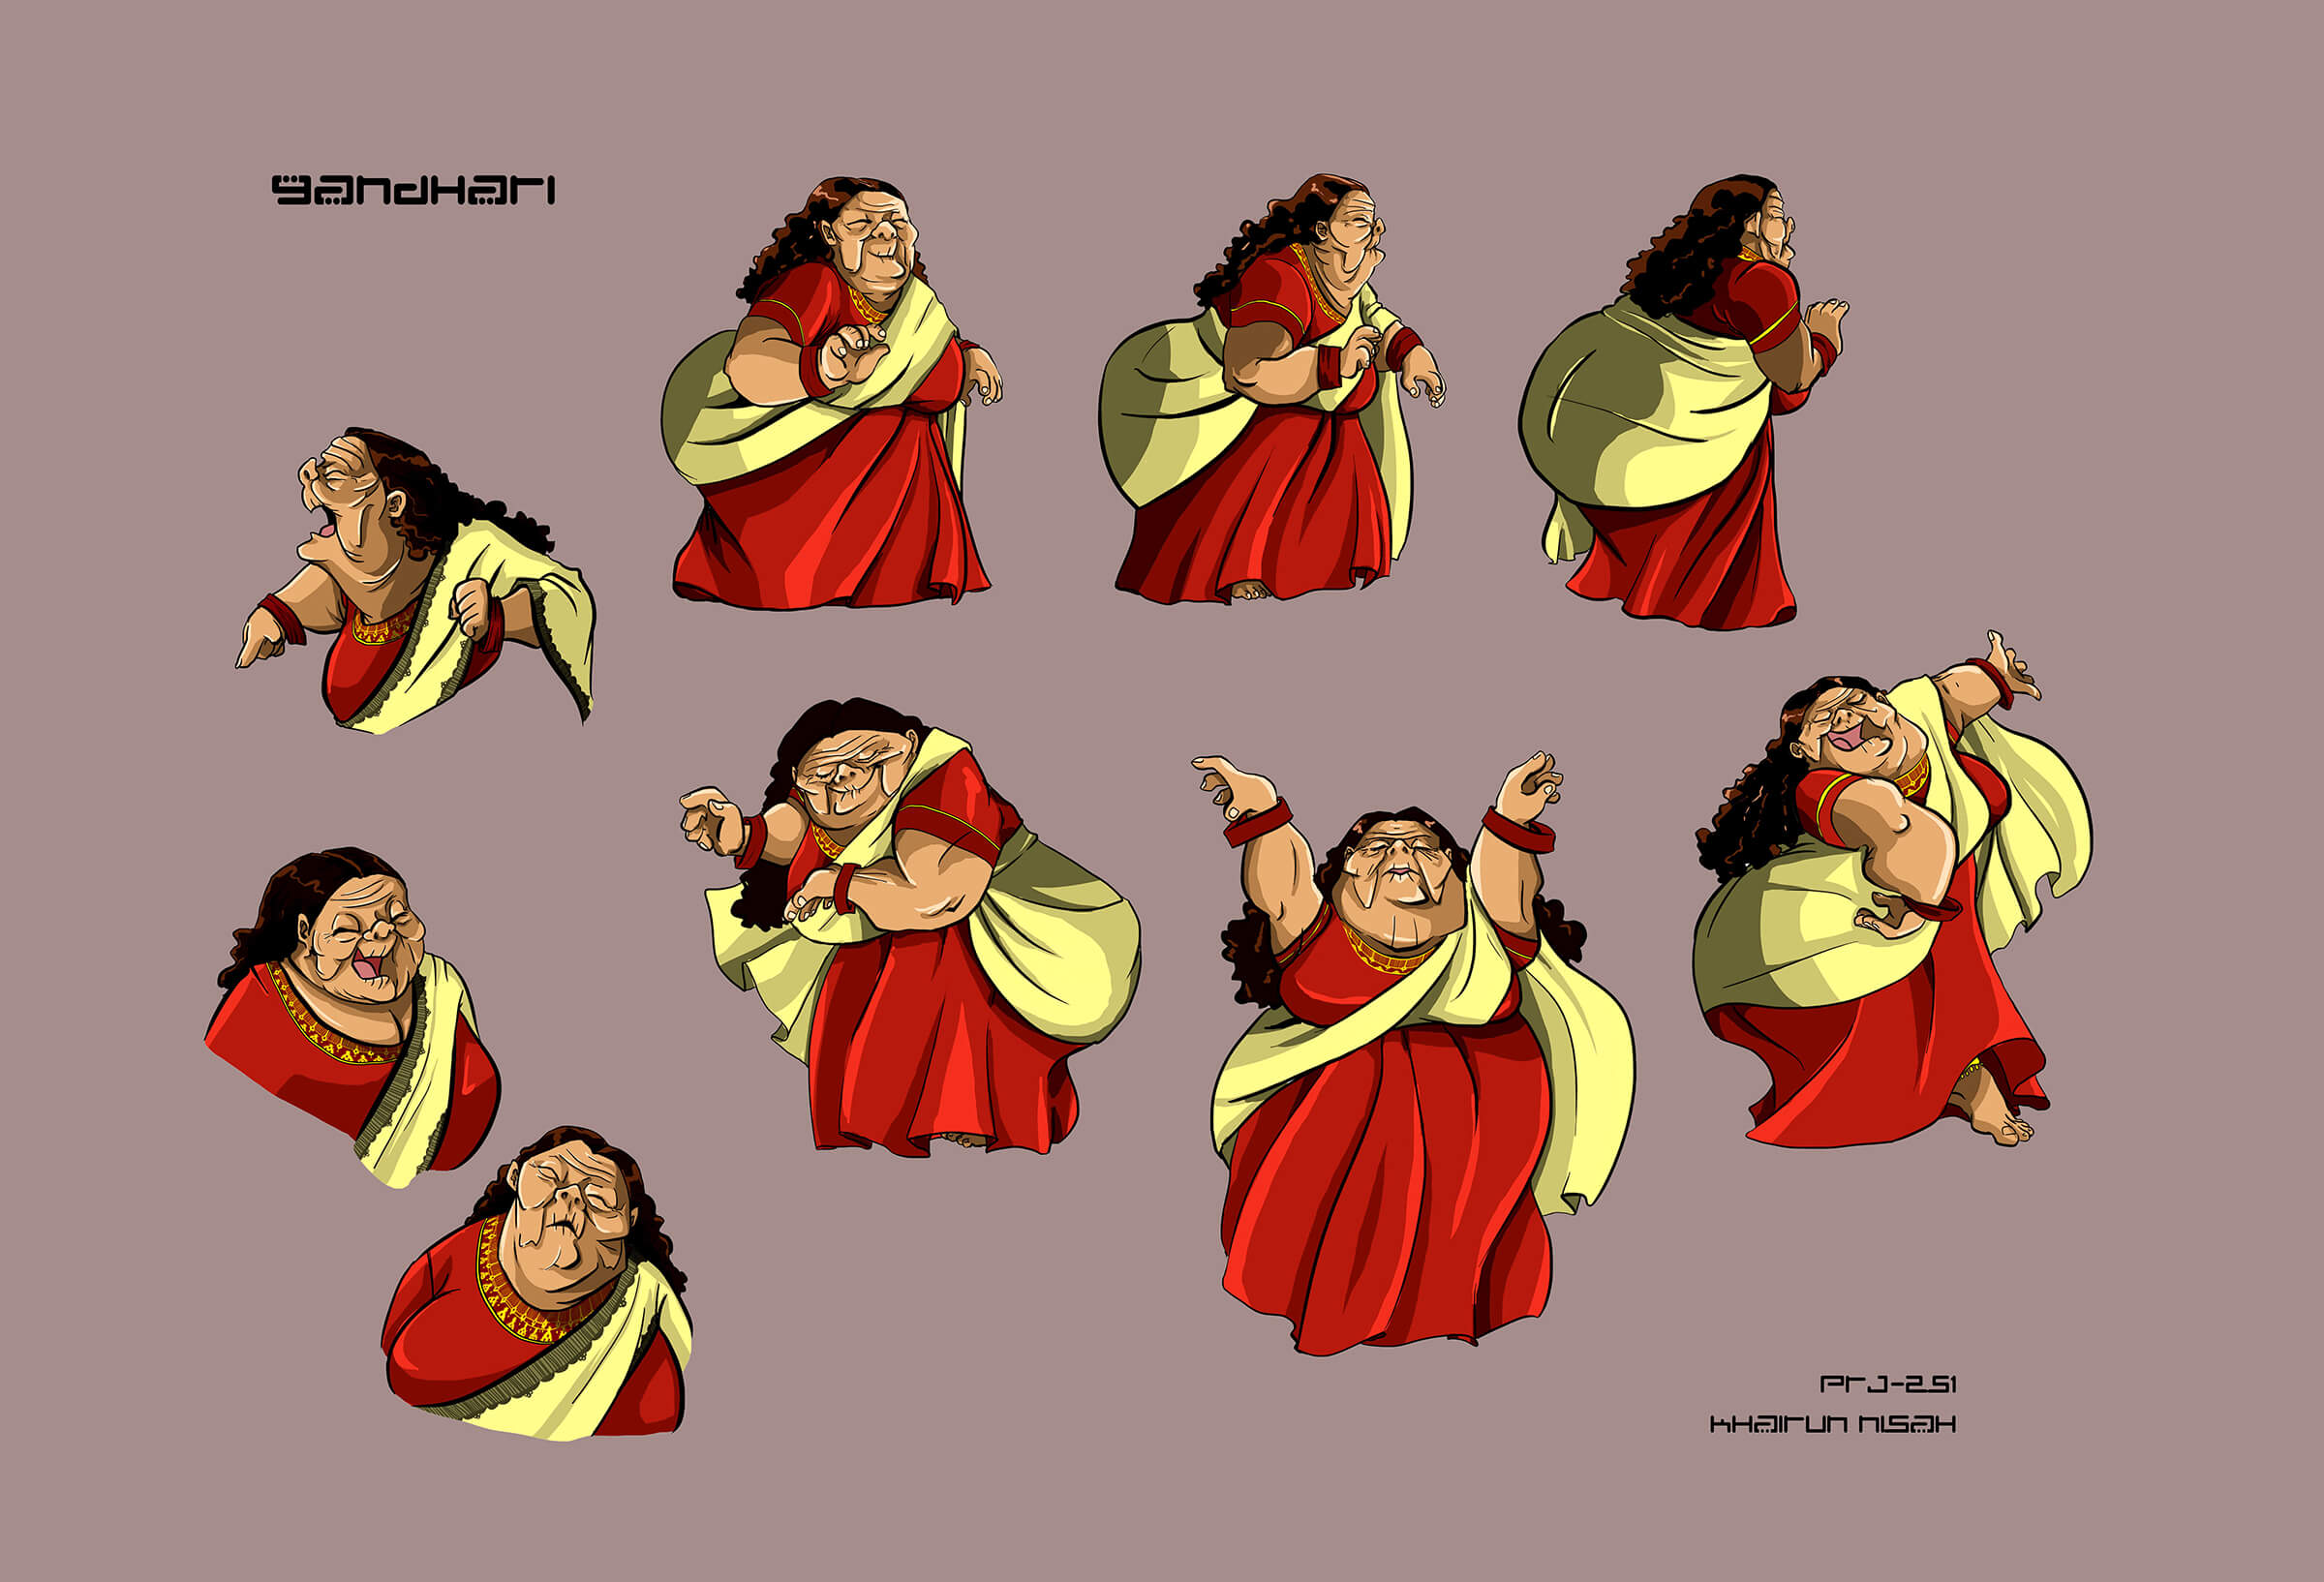 Character sketches of an old, wrinkled woman in a yellow and red sari-type dress as she dances and delivers various reactions.